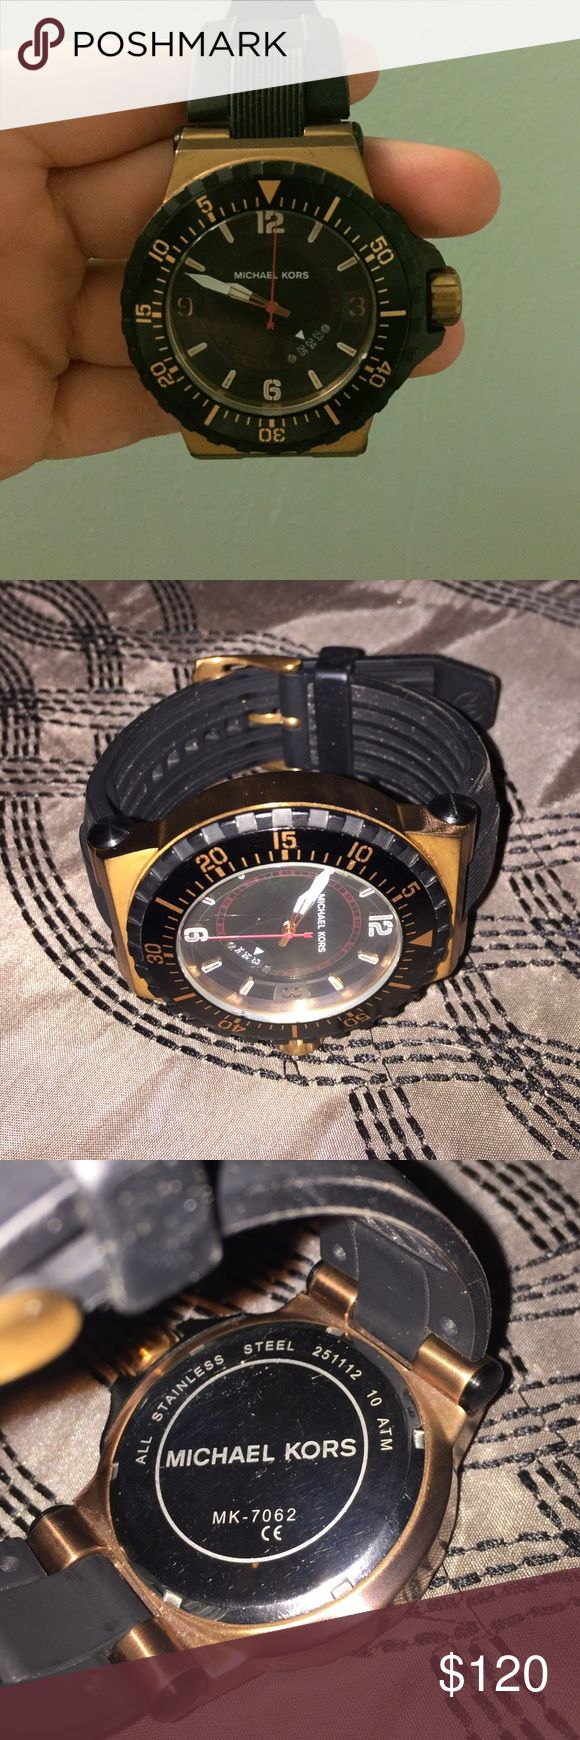 Men's Michael kors watch black and copper A big face watch with black and copper details and a black rubber strap. Great condition very small scratch on glass. Comes with original box- battery works fine. Michael Kors Accessories Watches